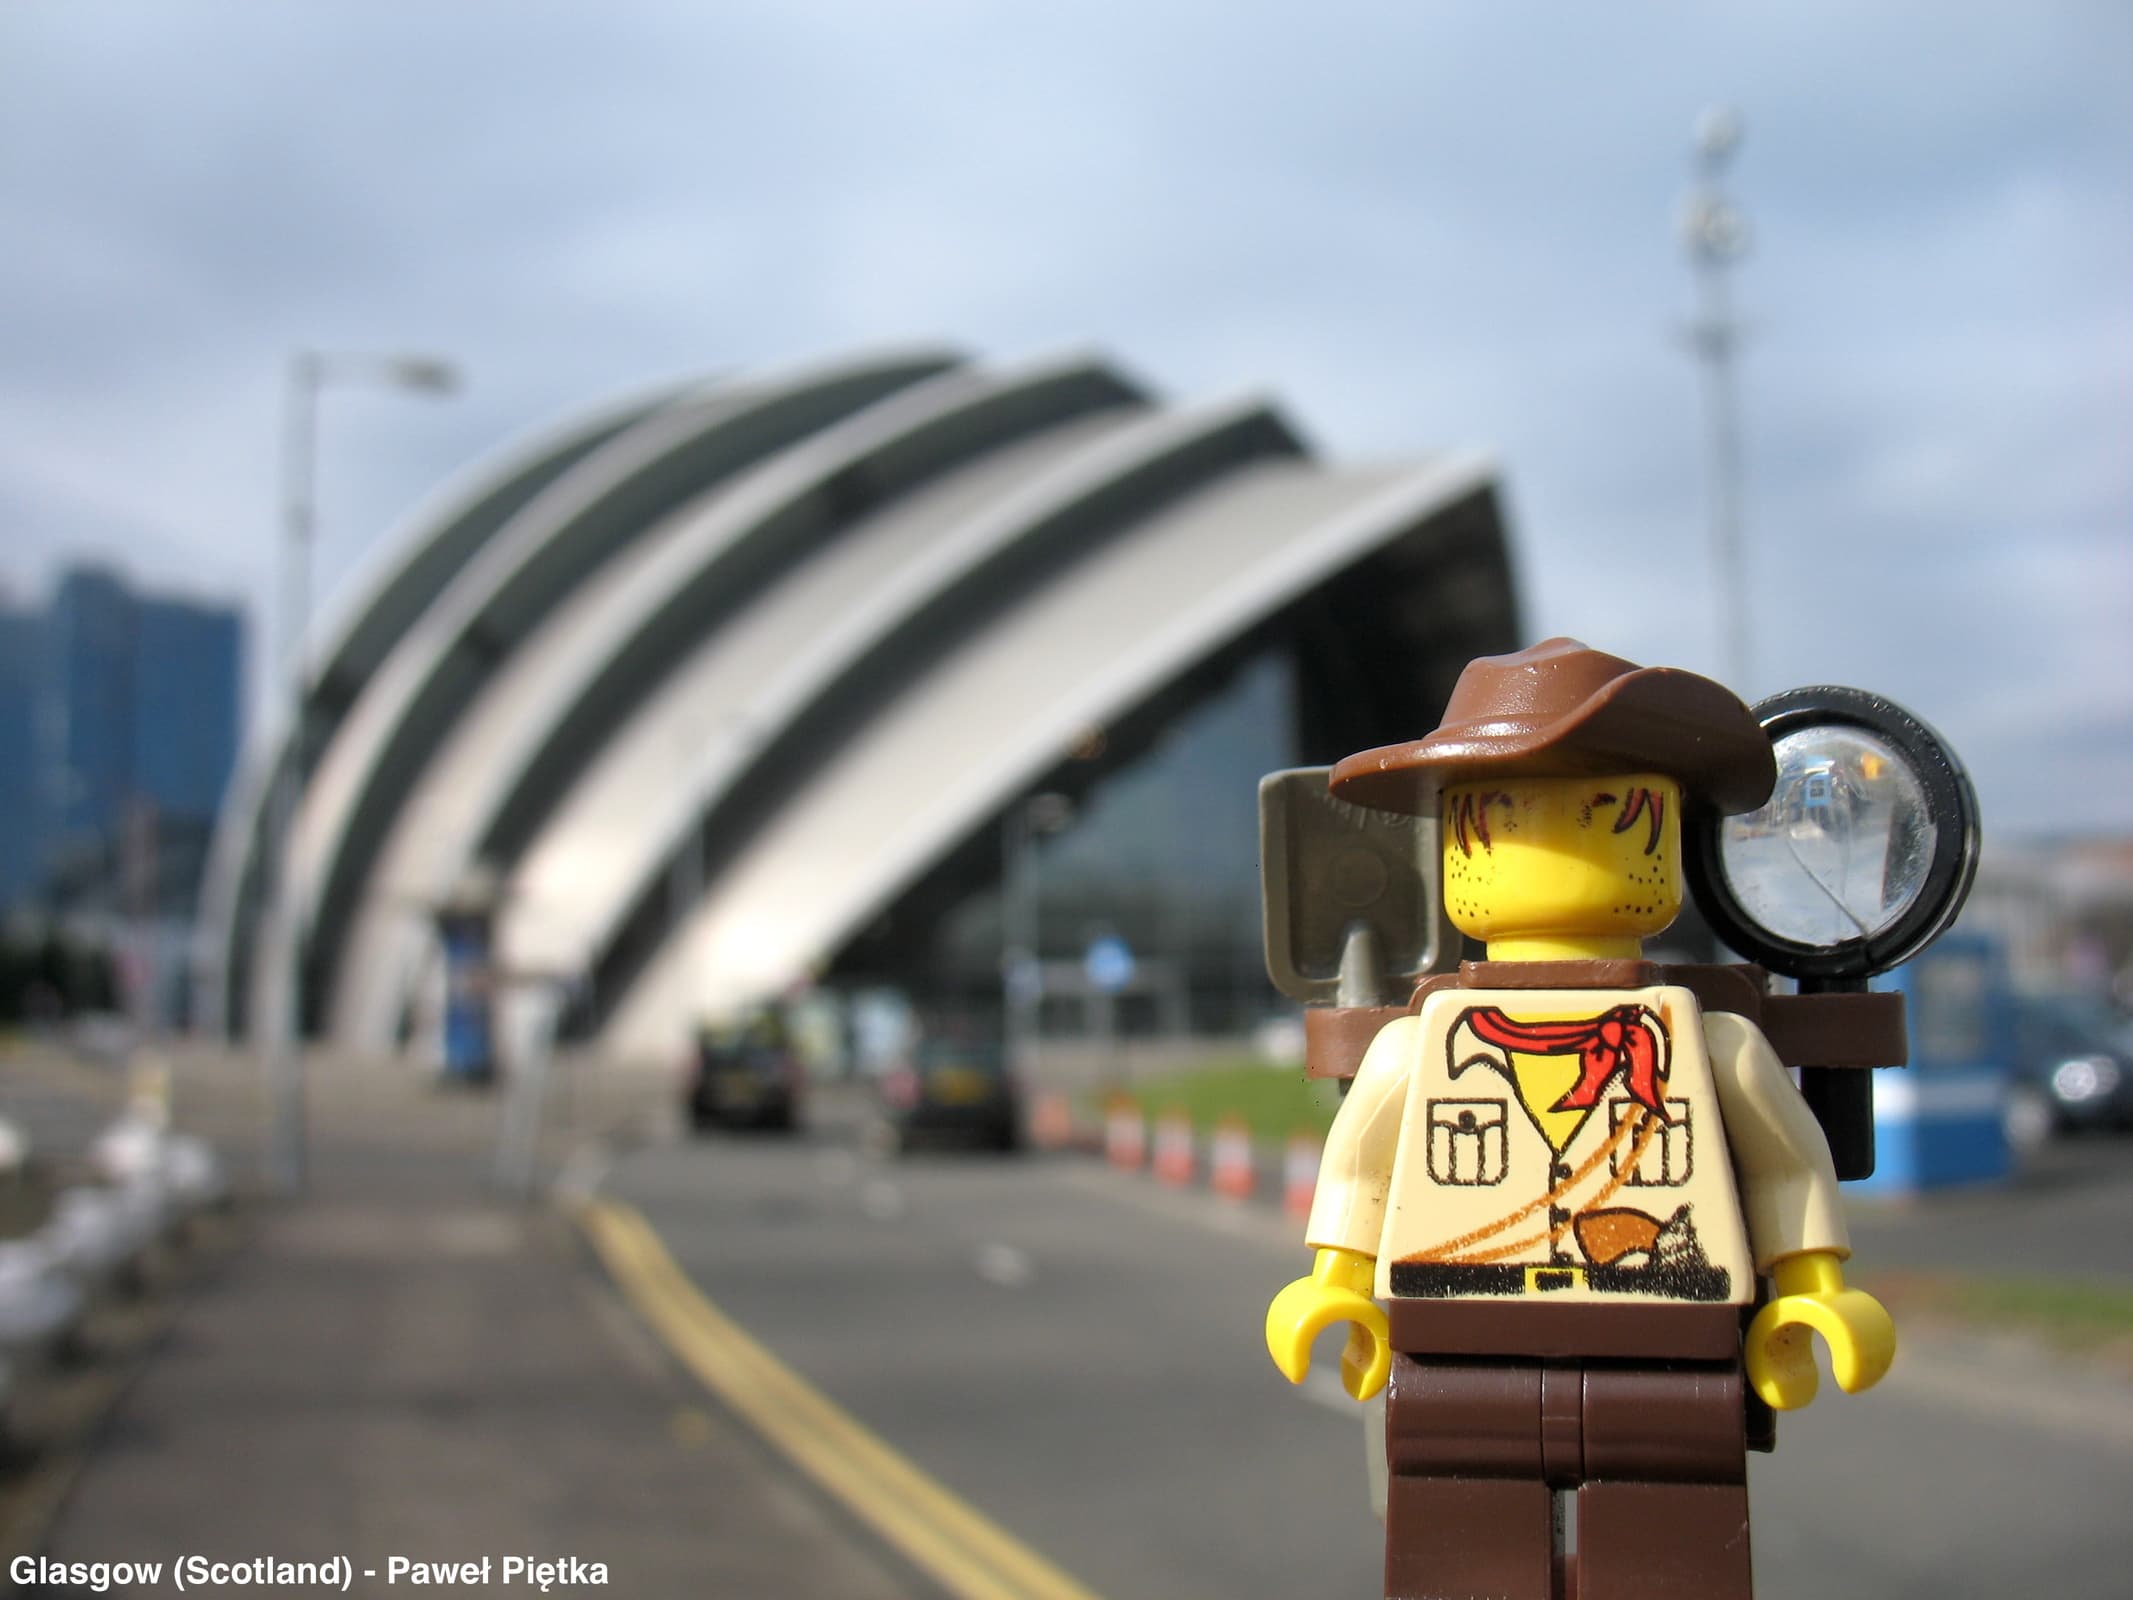 Glasgow (Scotland) - Clyde Auditorium Armadillo